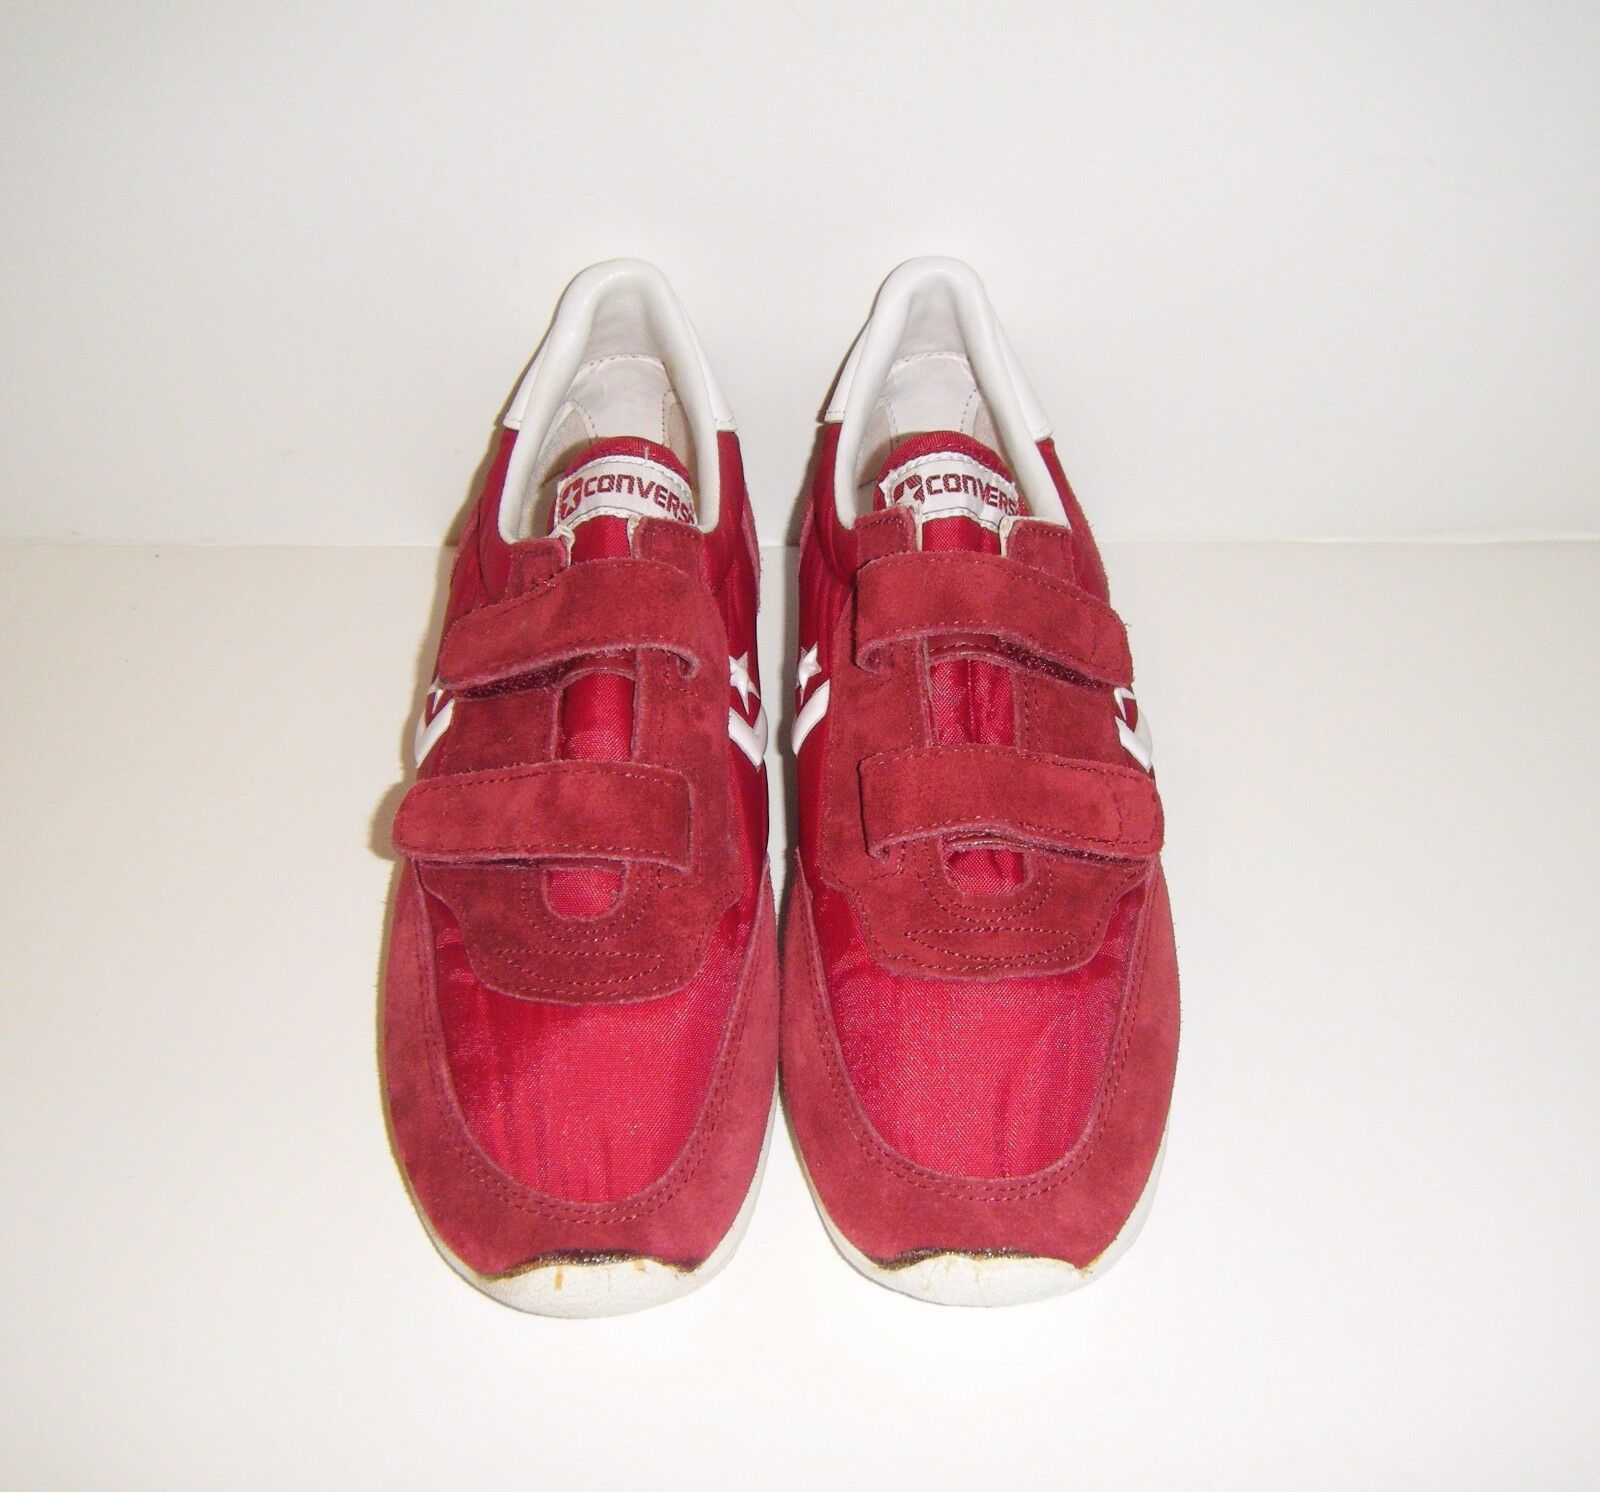 Vtg NOS 1980s 1980s 1980s Converse One Star Scimitar Running Trainer Sz. 6 All Chuck Taylor d9d084